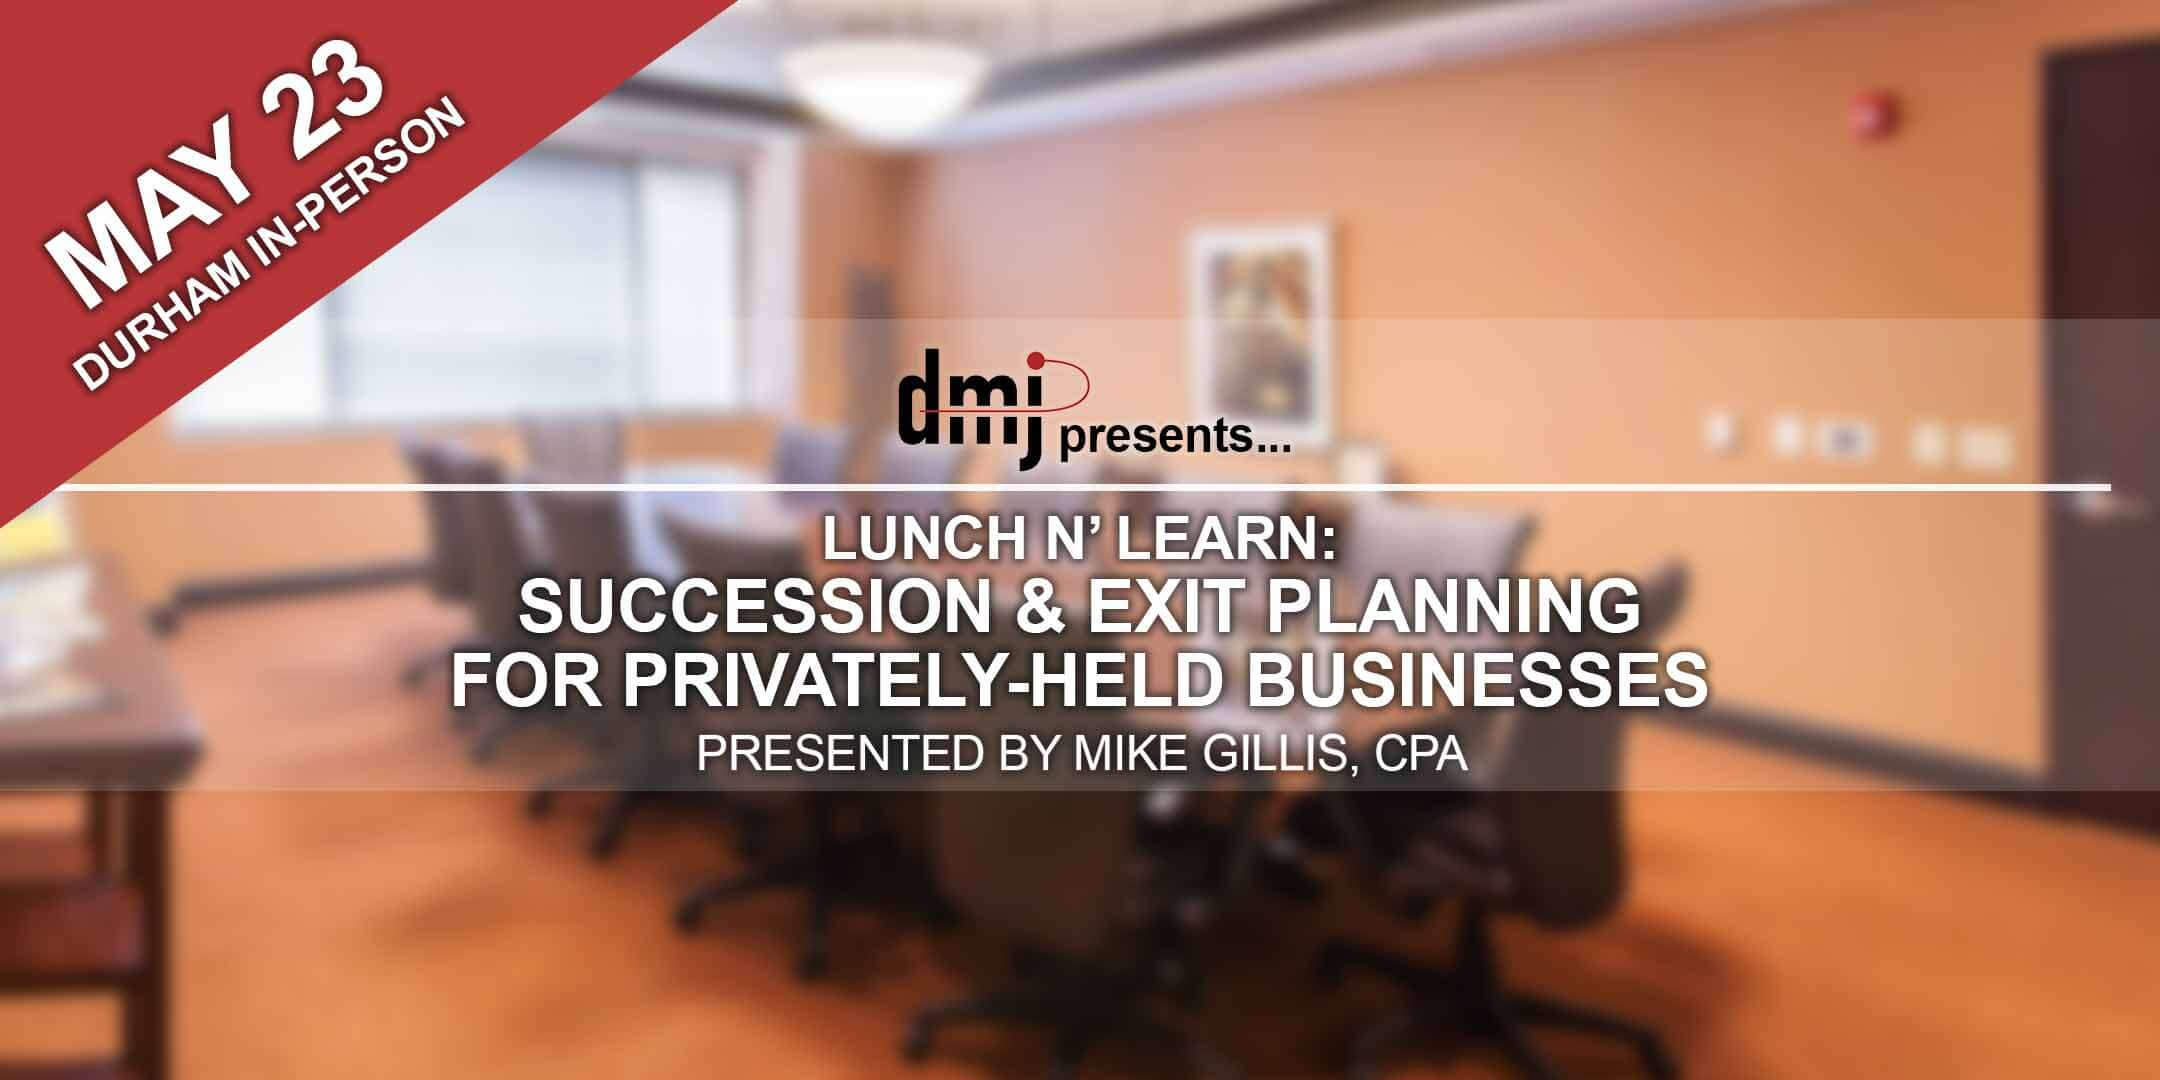 Lunch n' Learn: Succession & Exit Planning for Privately Held Businesses (Durham In-Person)